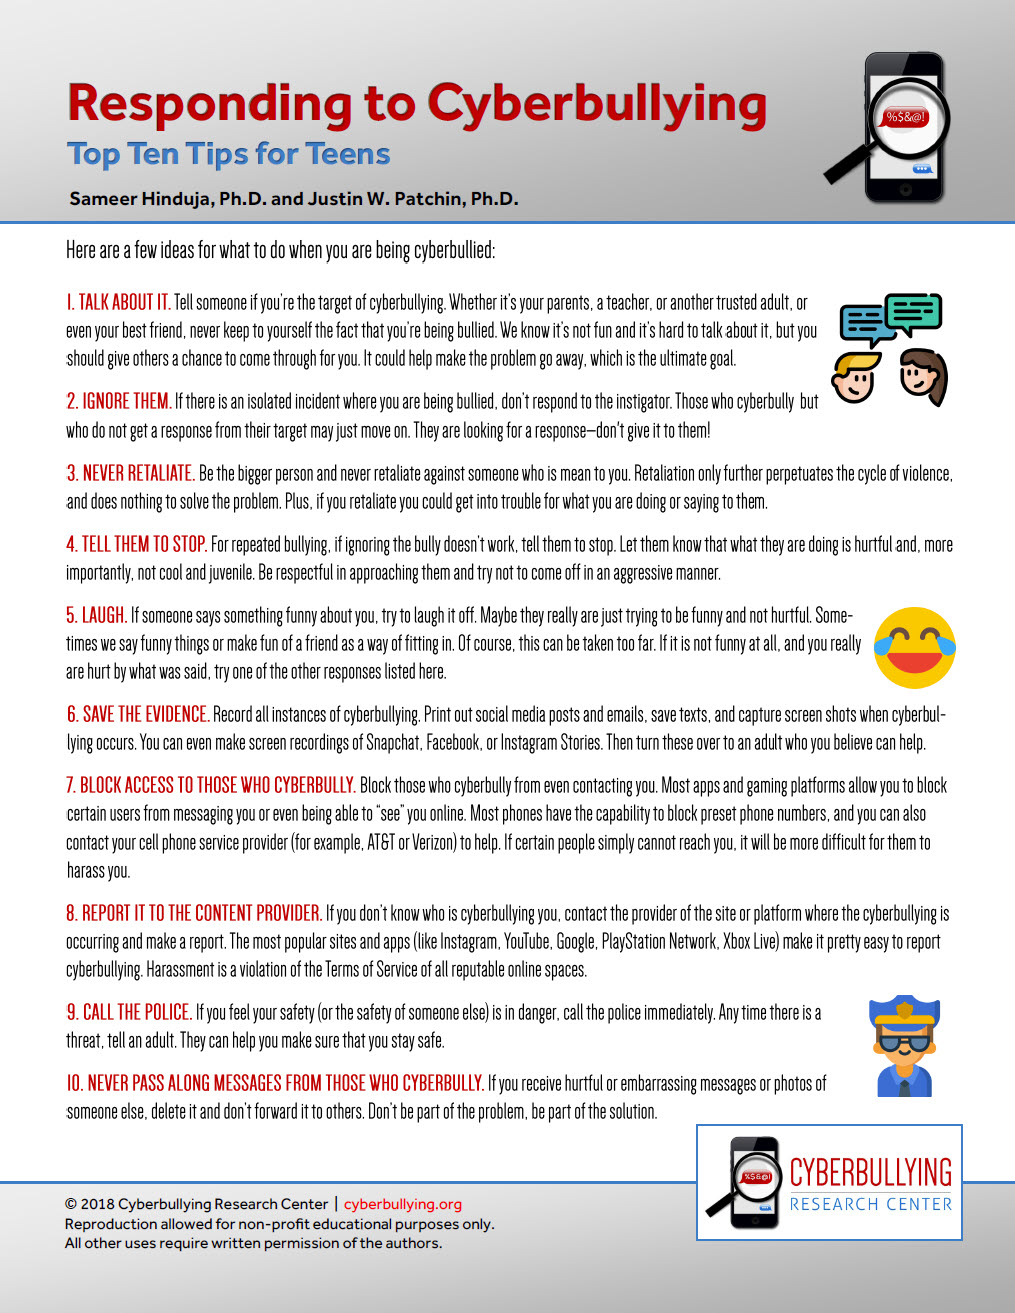 Responding to Cyberbullying: Top Ten Tips for Teens